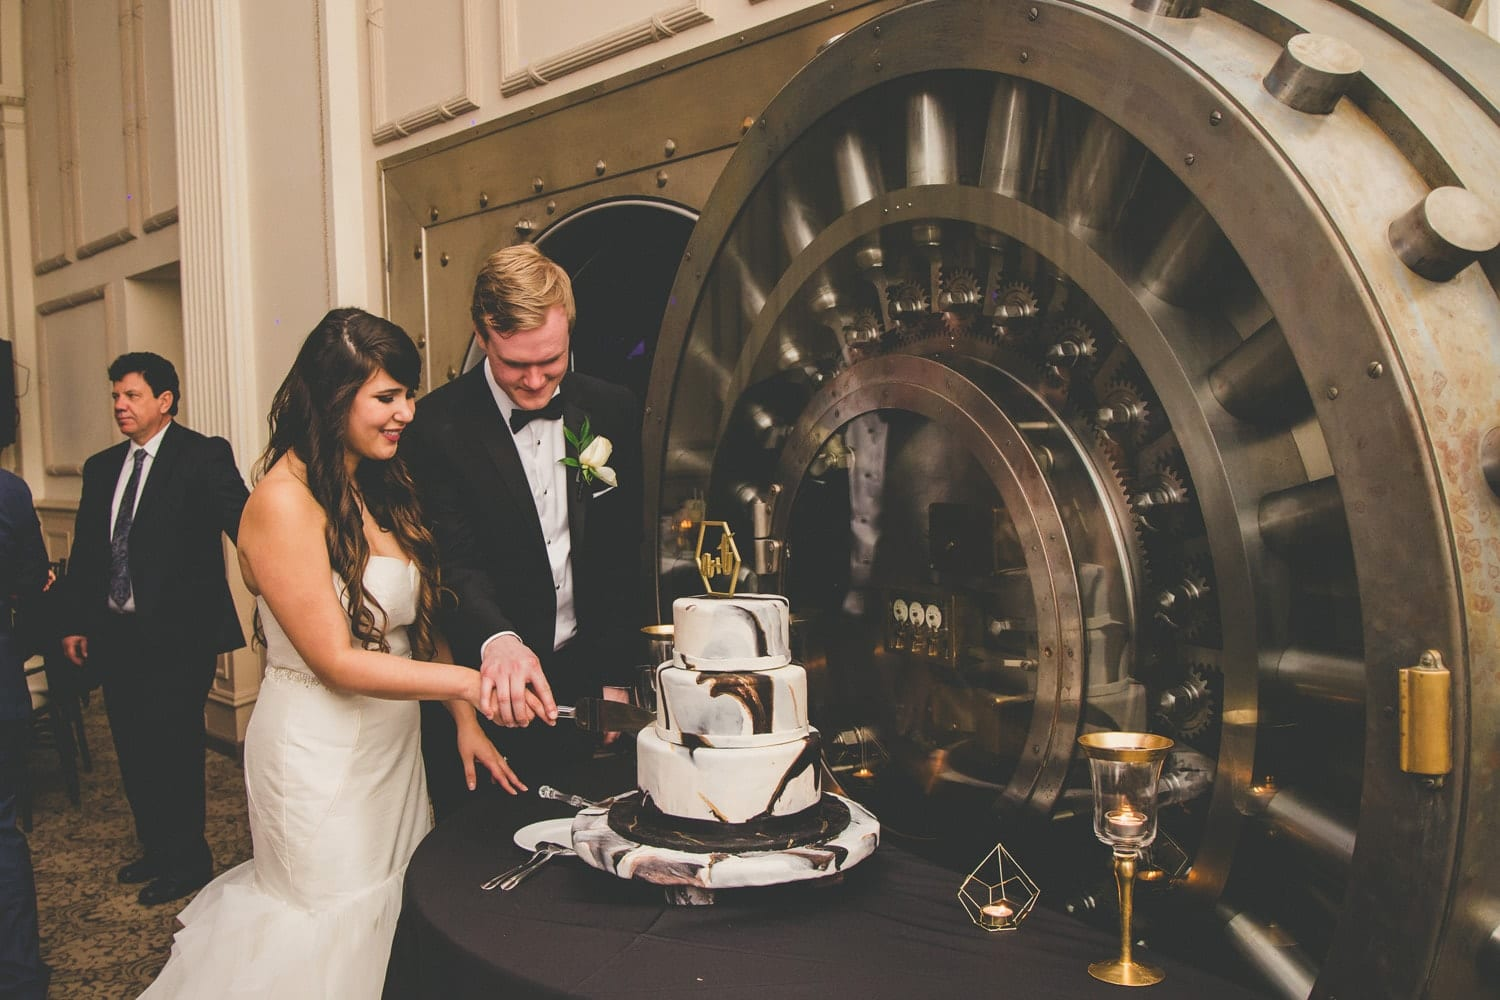 Cake cutting | Modern St. Augustine Wedding at The Treasury on The Plaza